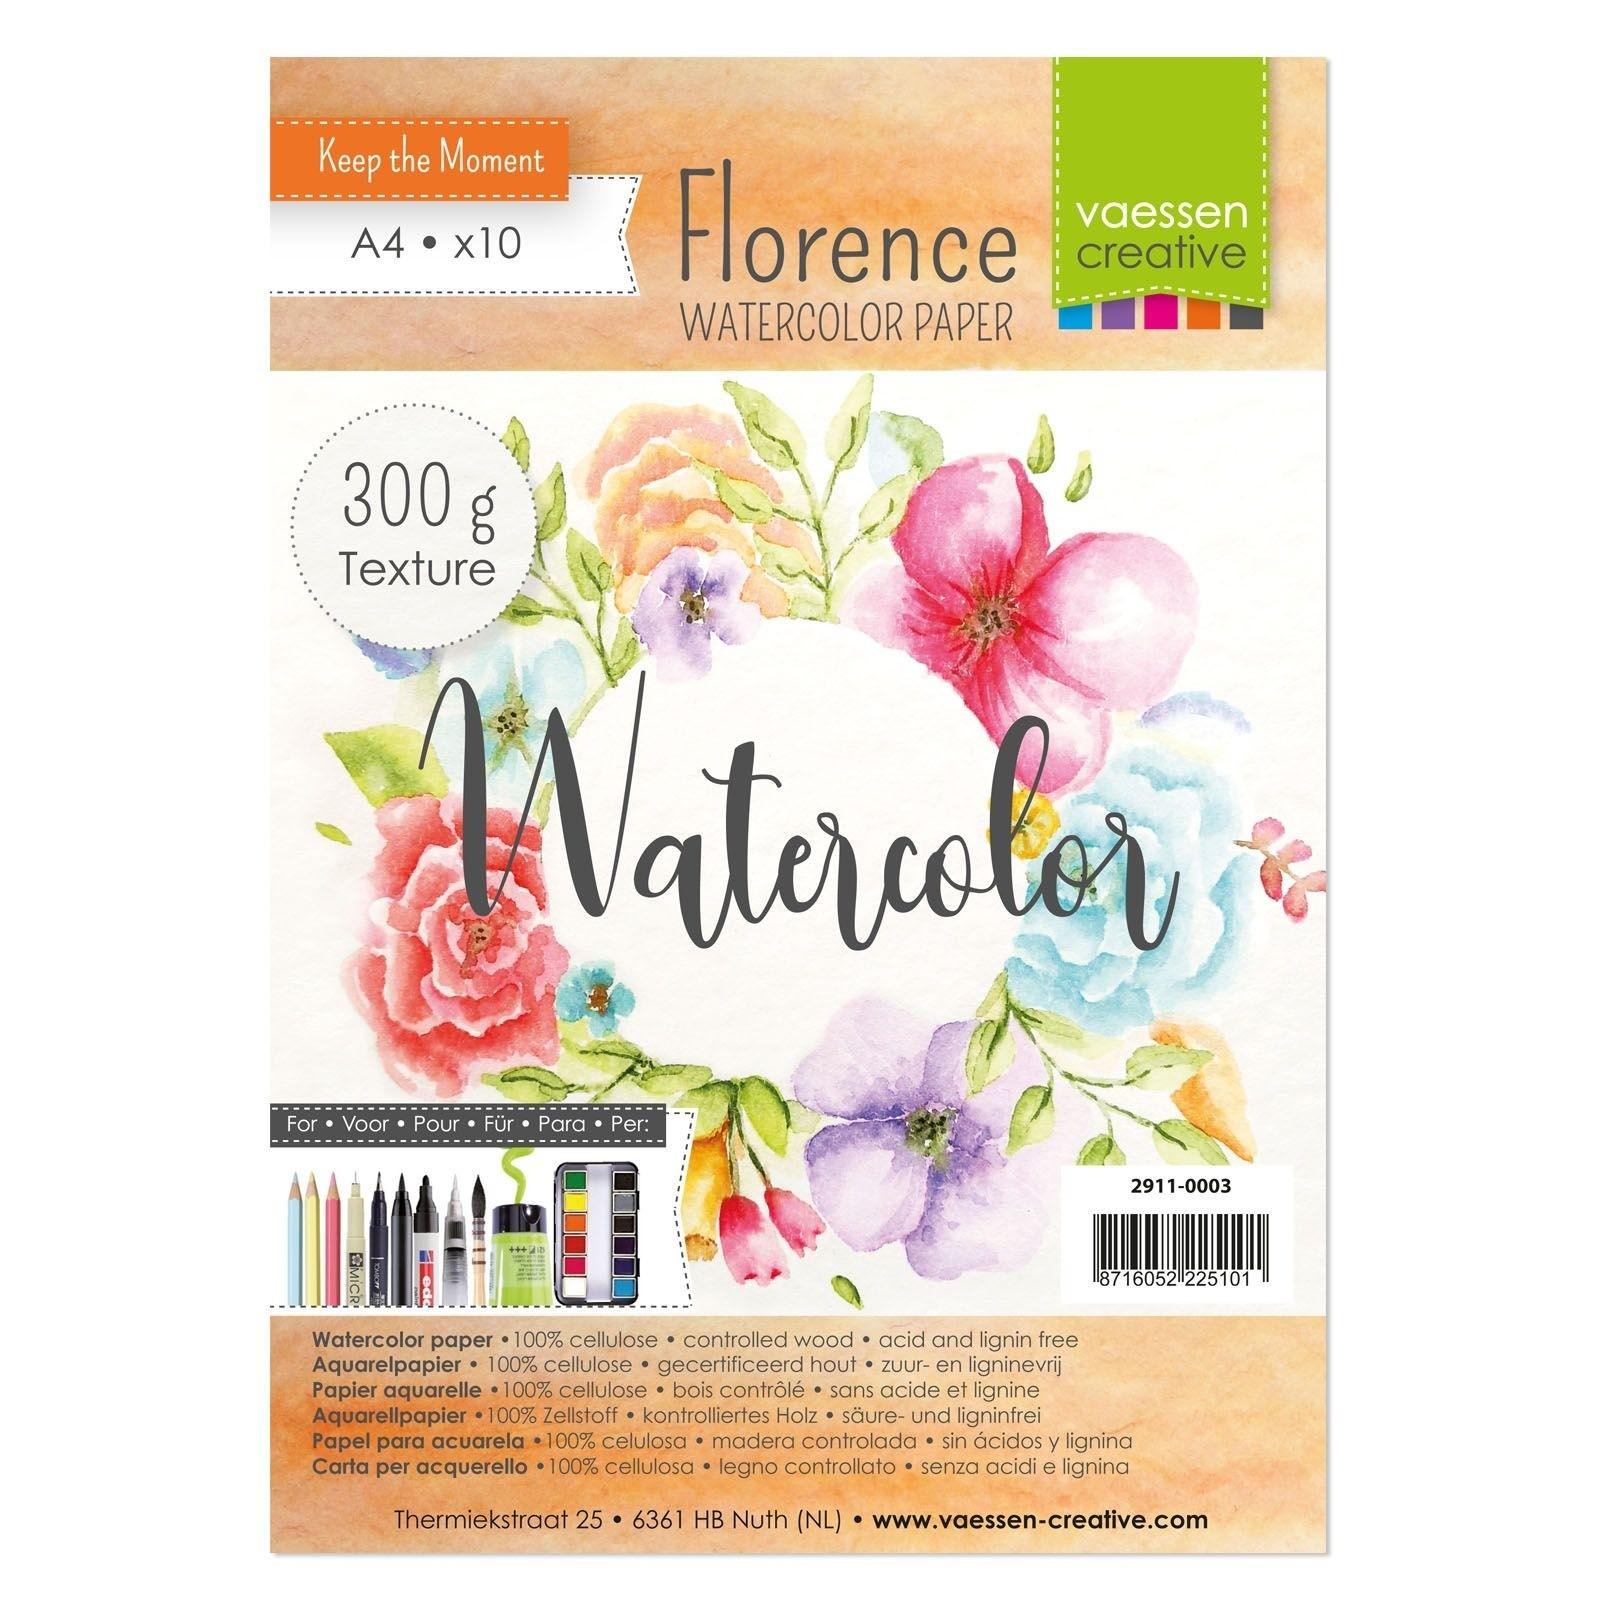 Vaessen Creative - Florence - Watercolor Paper - 300gr Textured - A4 - (10pcs)